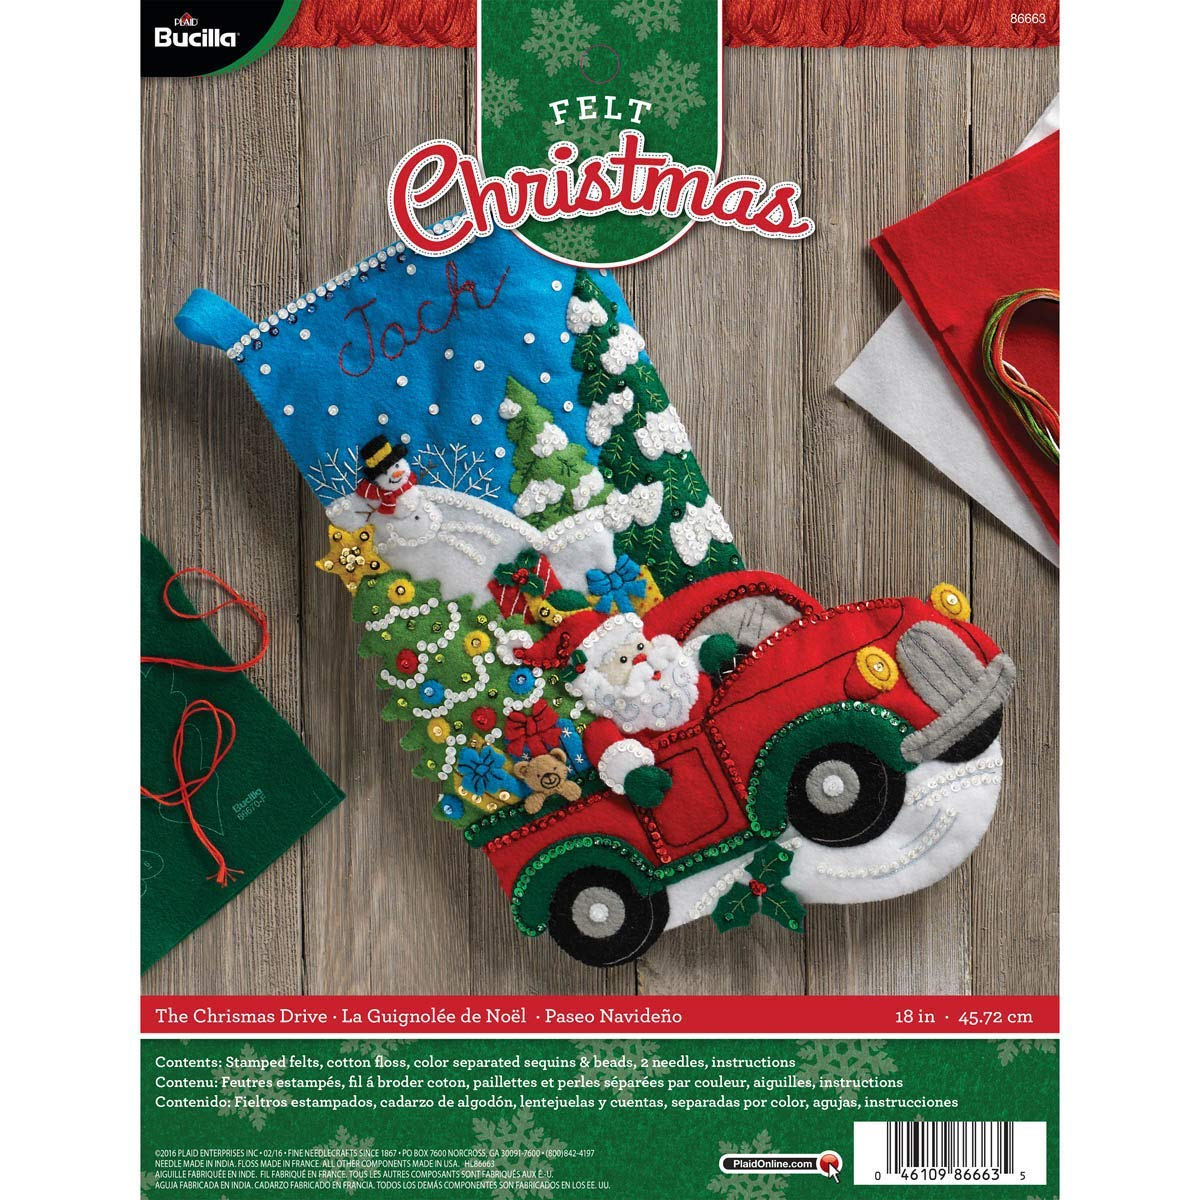 Bucilla 86663I Felt Applique Stocking Kit, The Christmas Drive, 18-Inch, 86663 by Bucilla